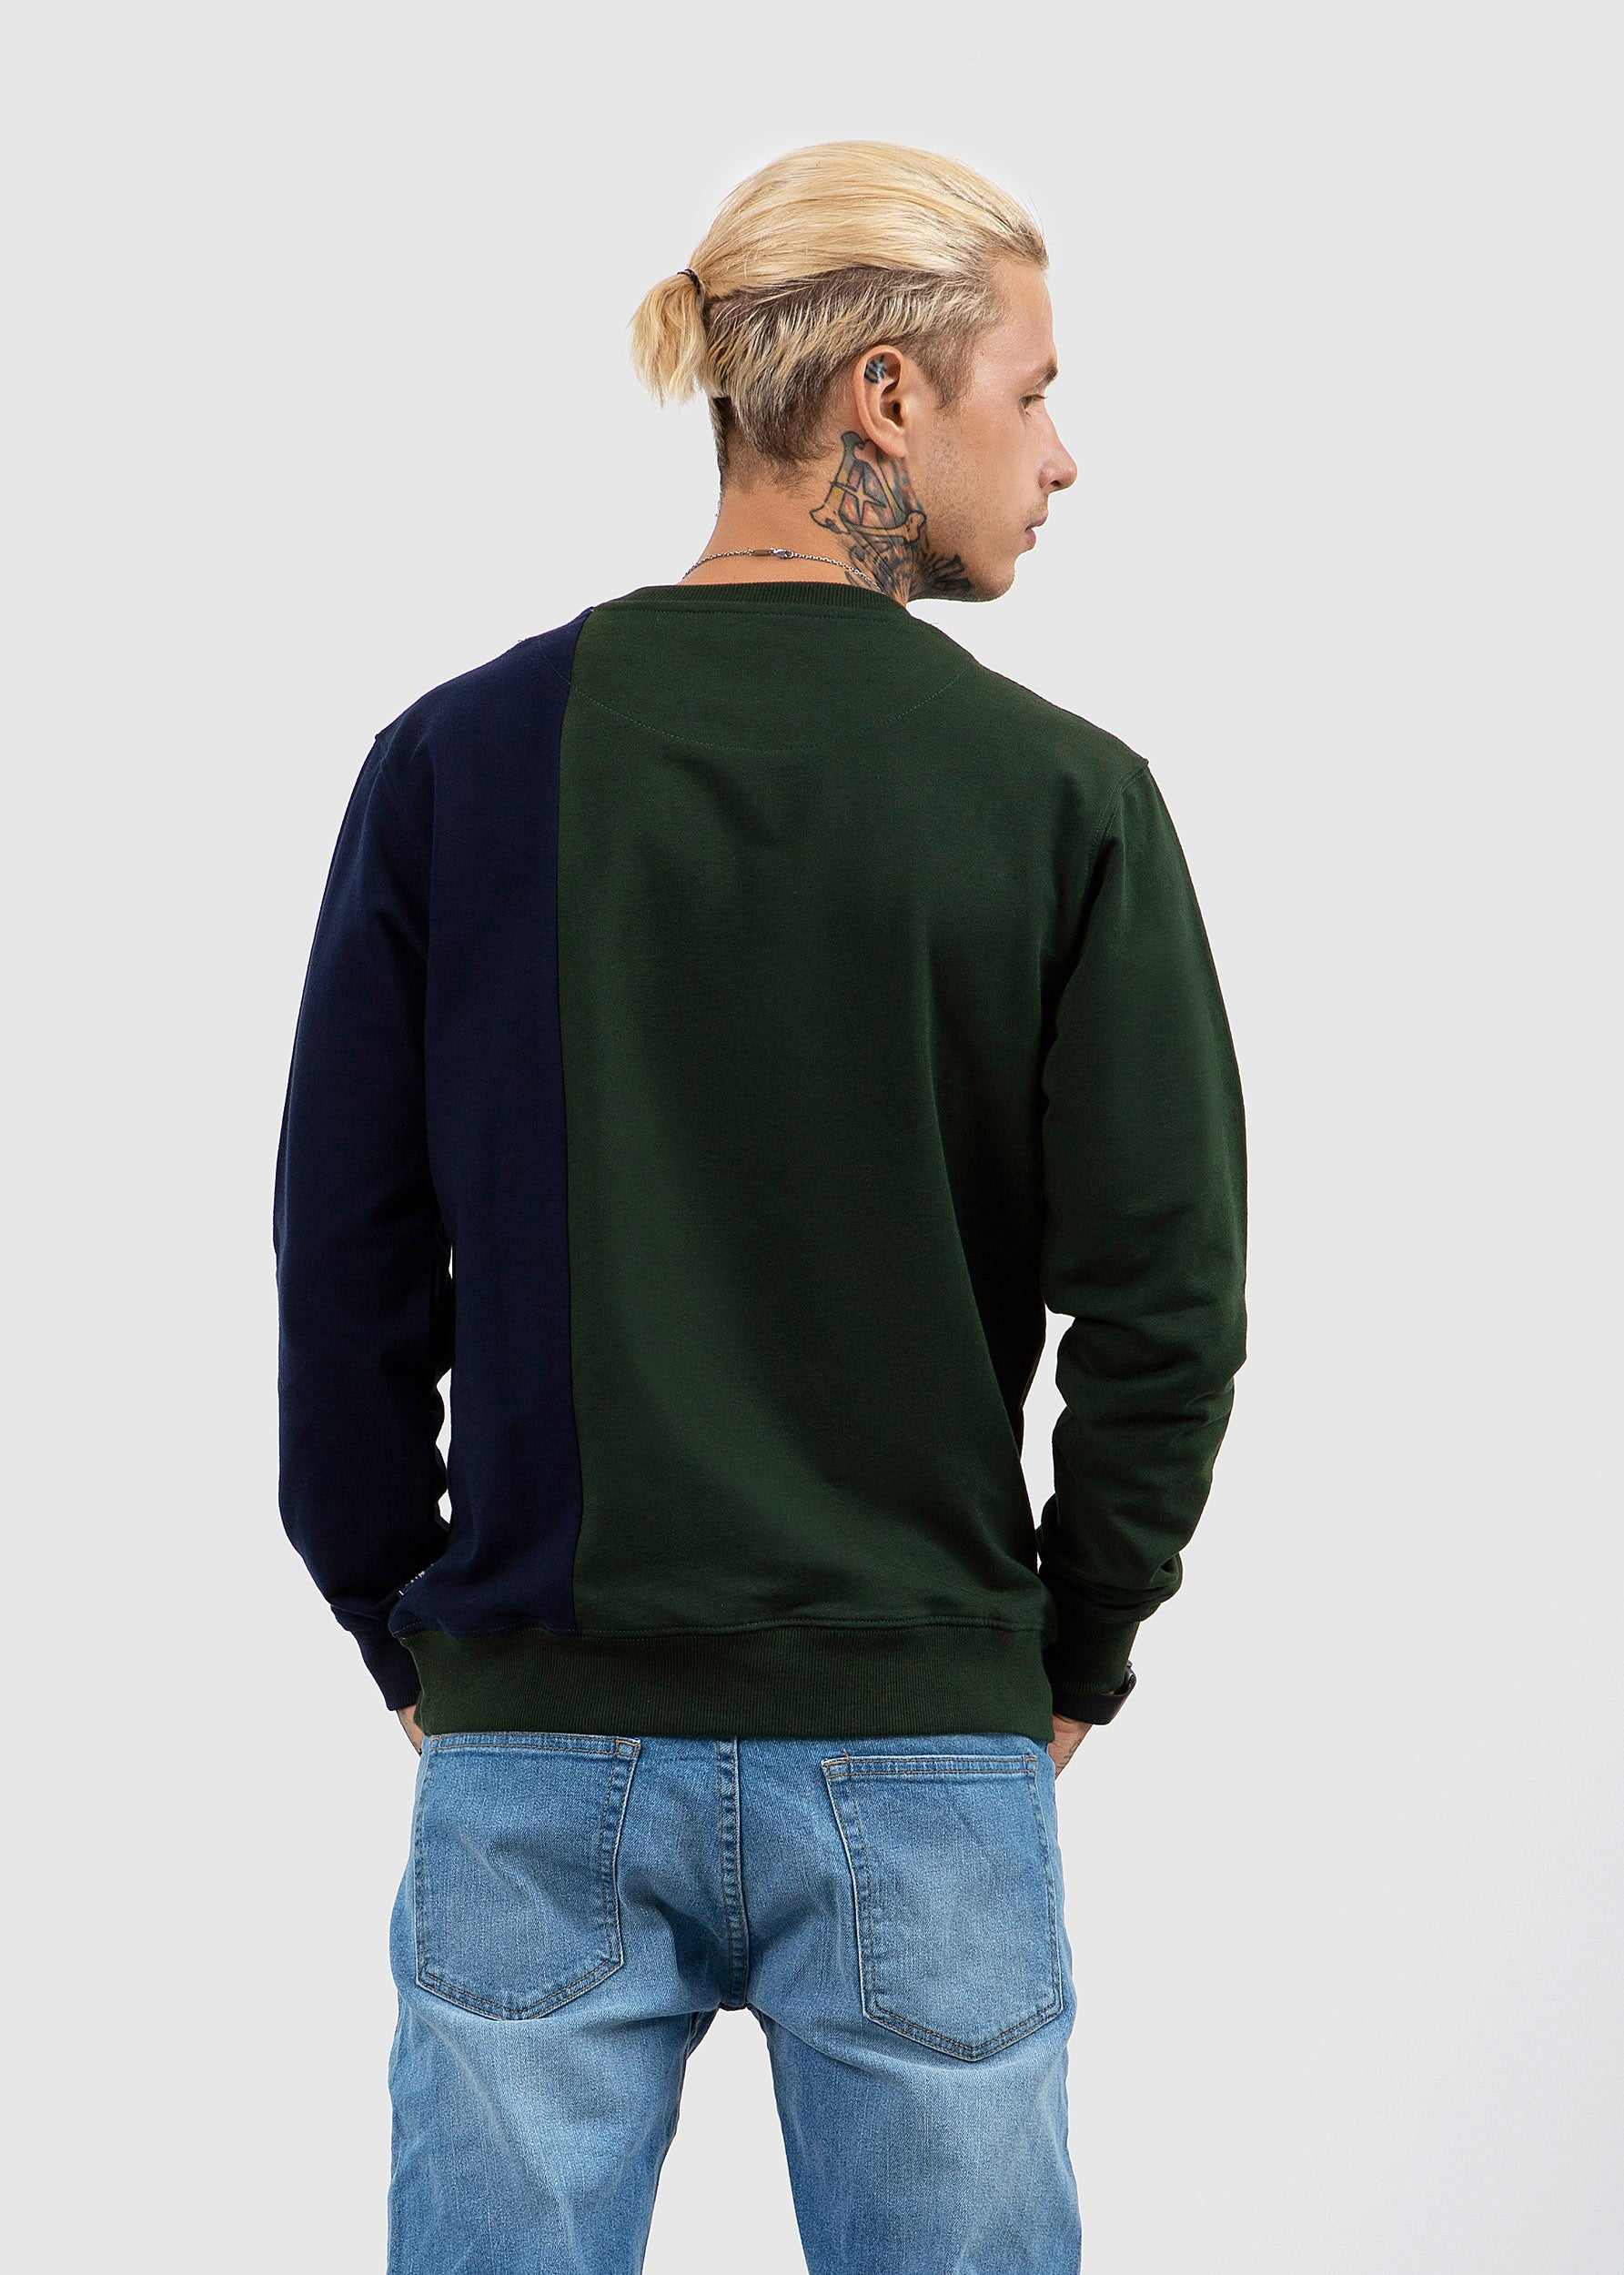 SWEATSHIRT GREEN 1 FW